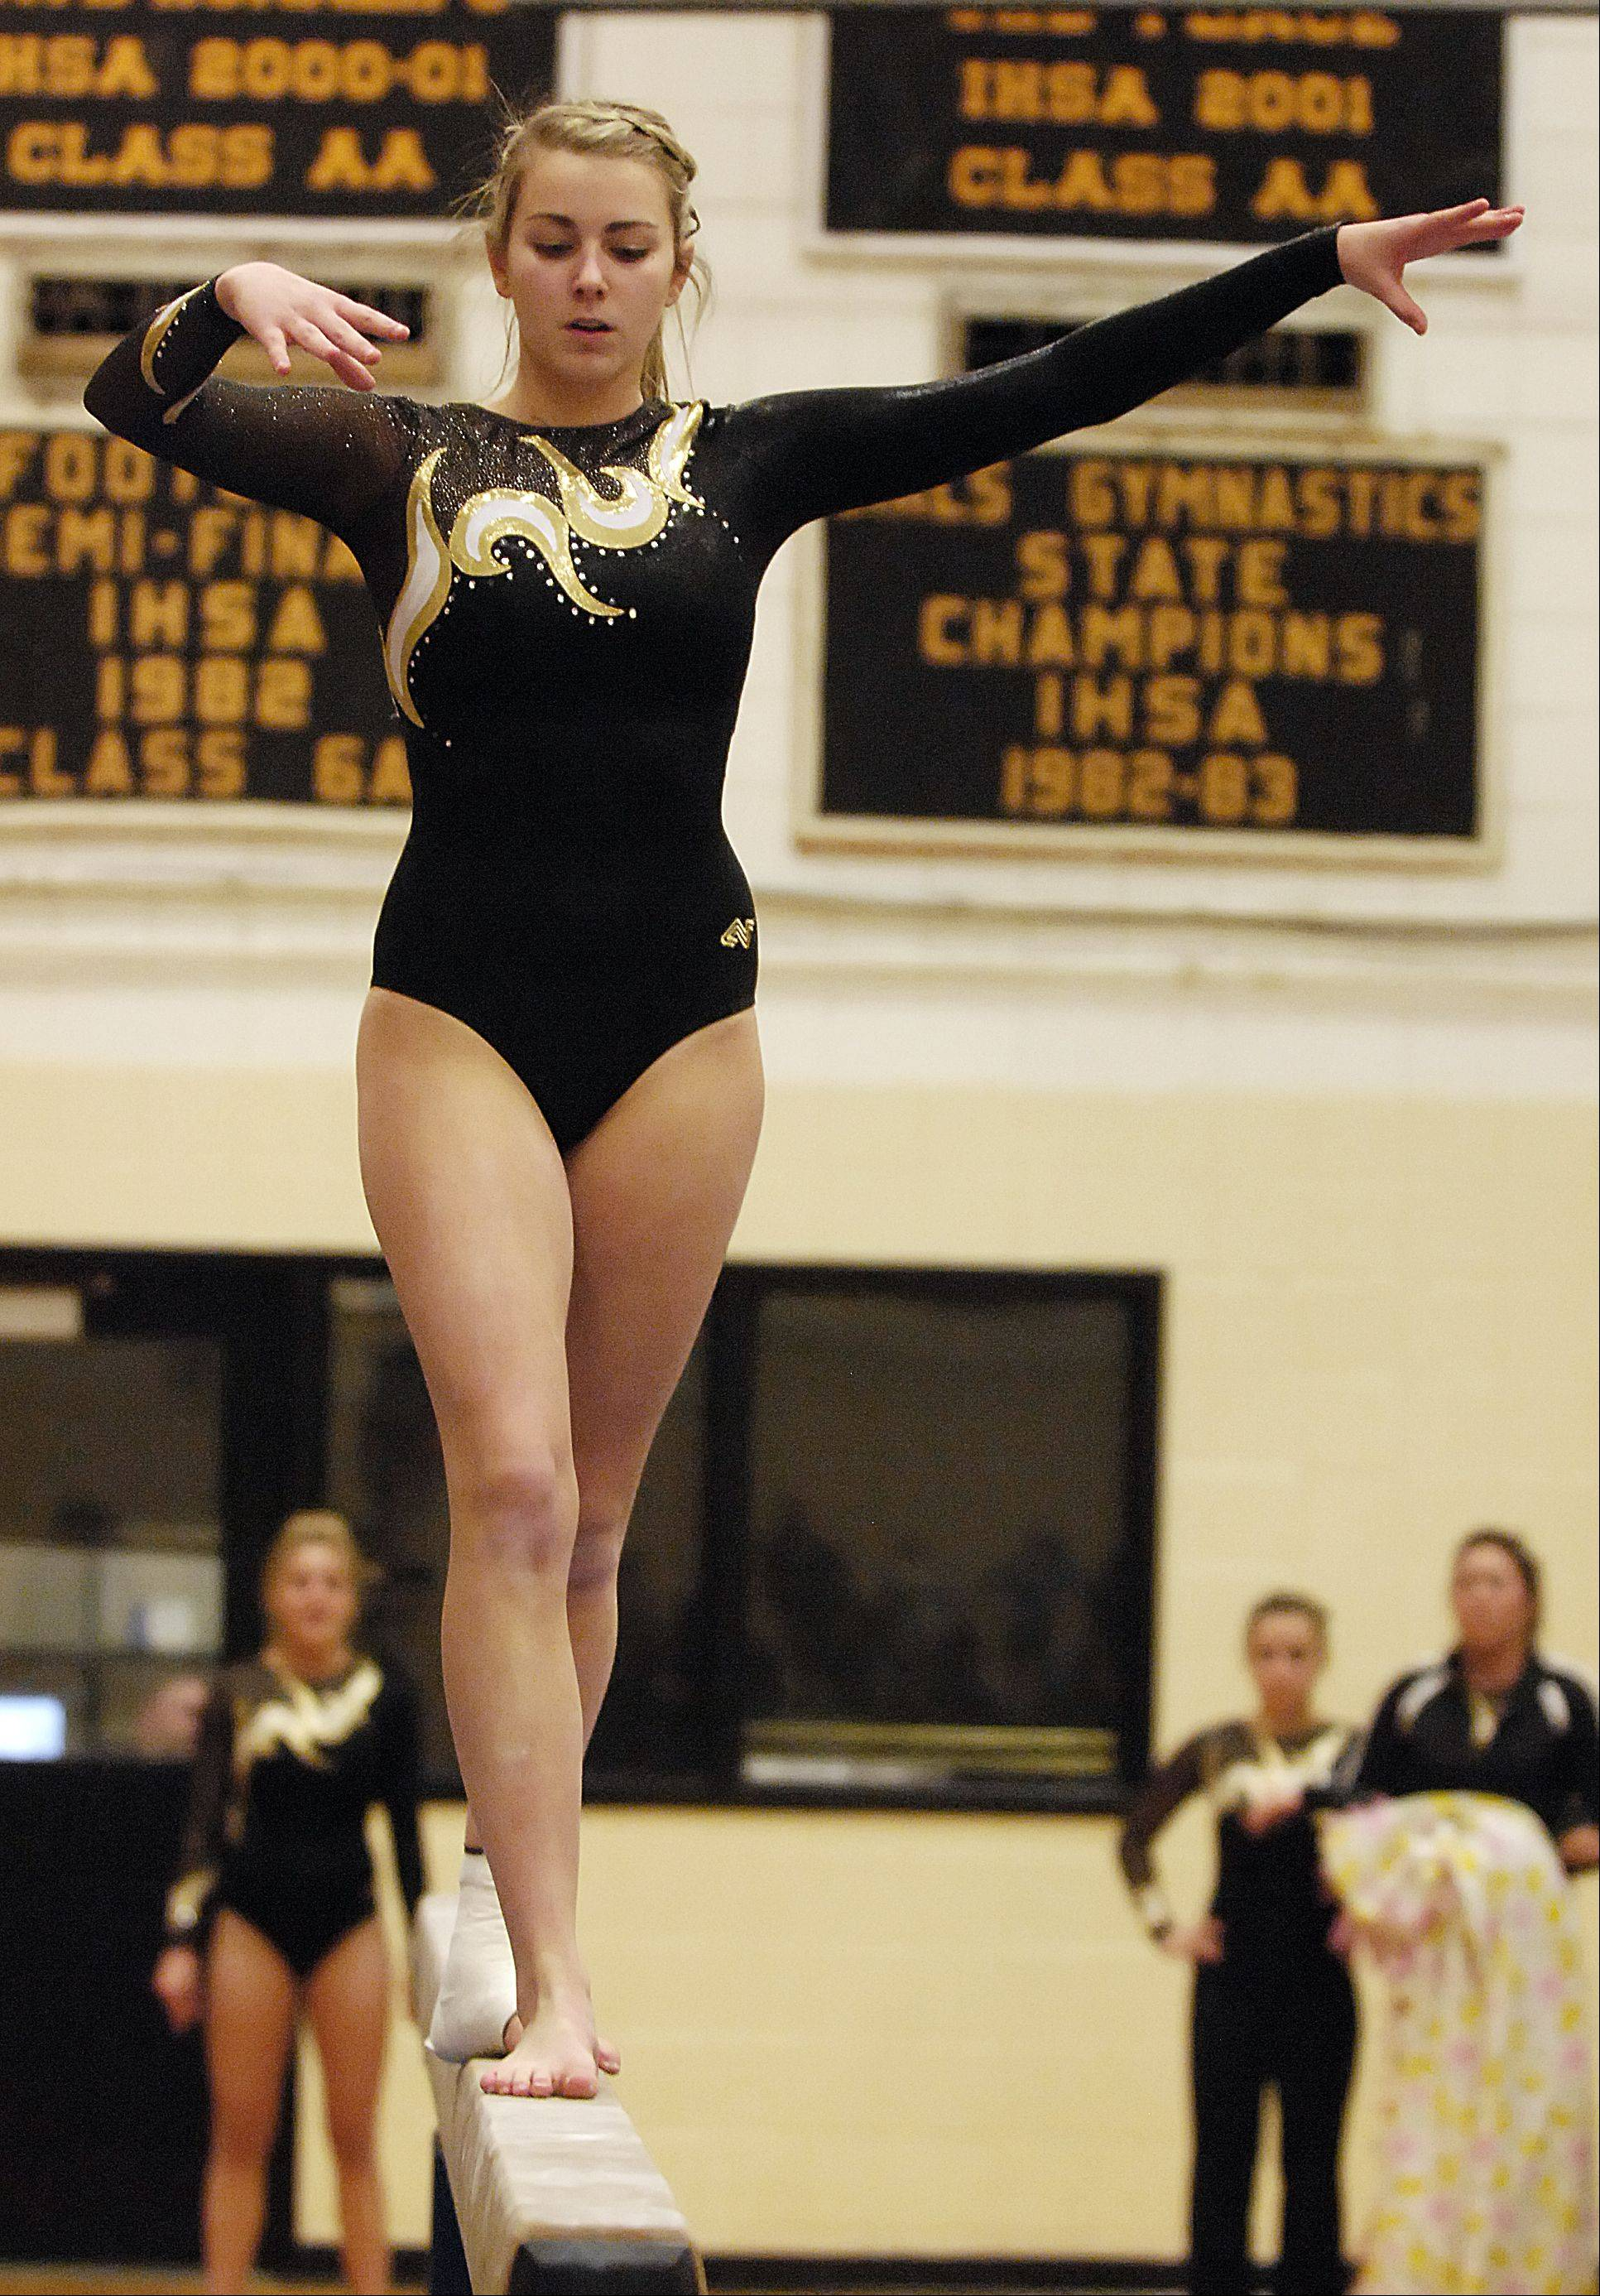 Erin Panhorst of Glenbard North performs on the beam during the girls gymnastics gectional tournament at Glenbard North High School.